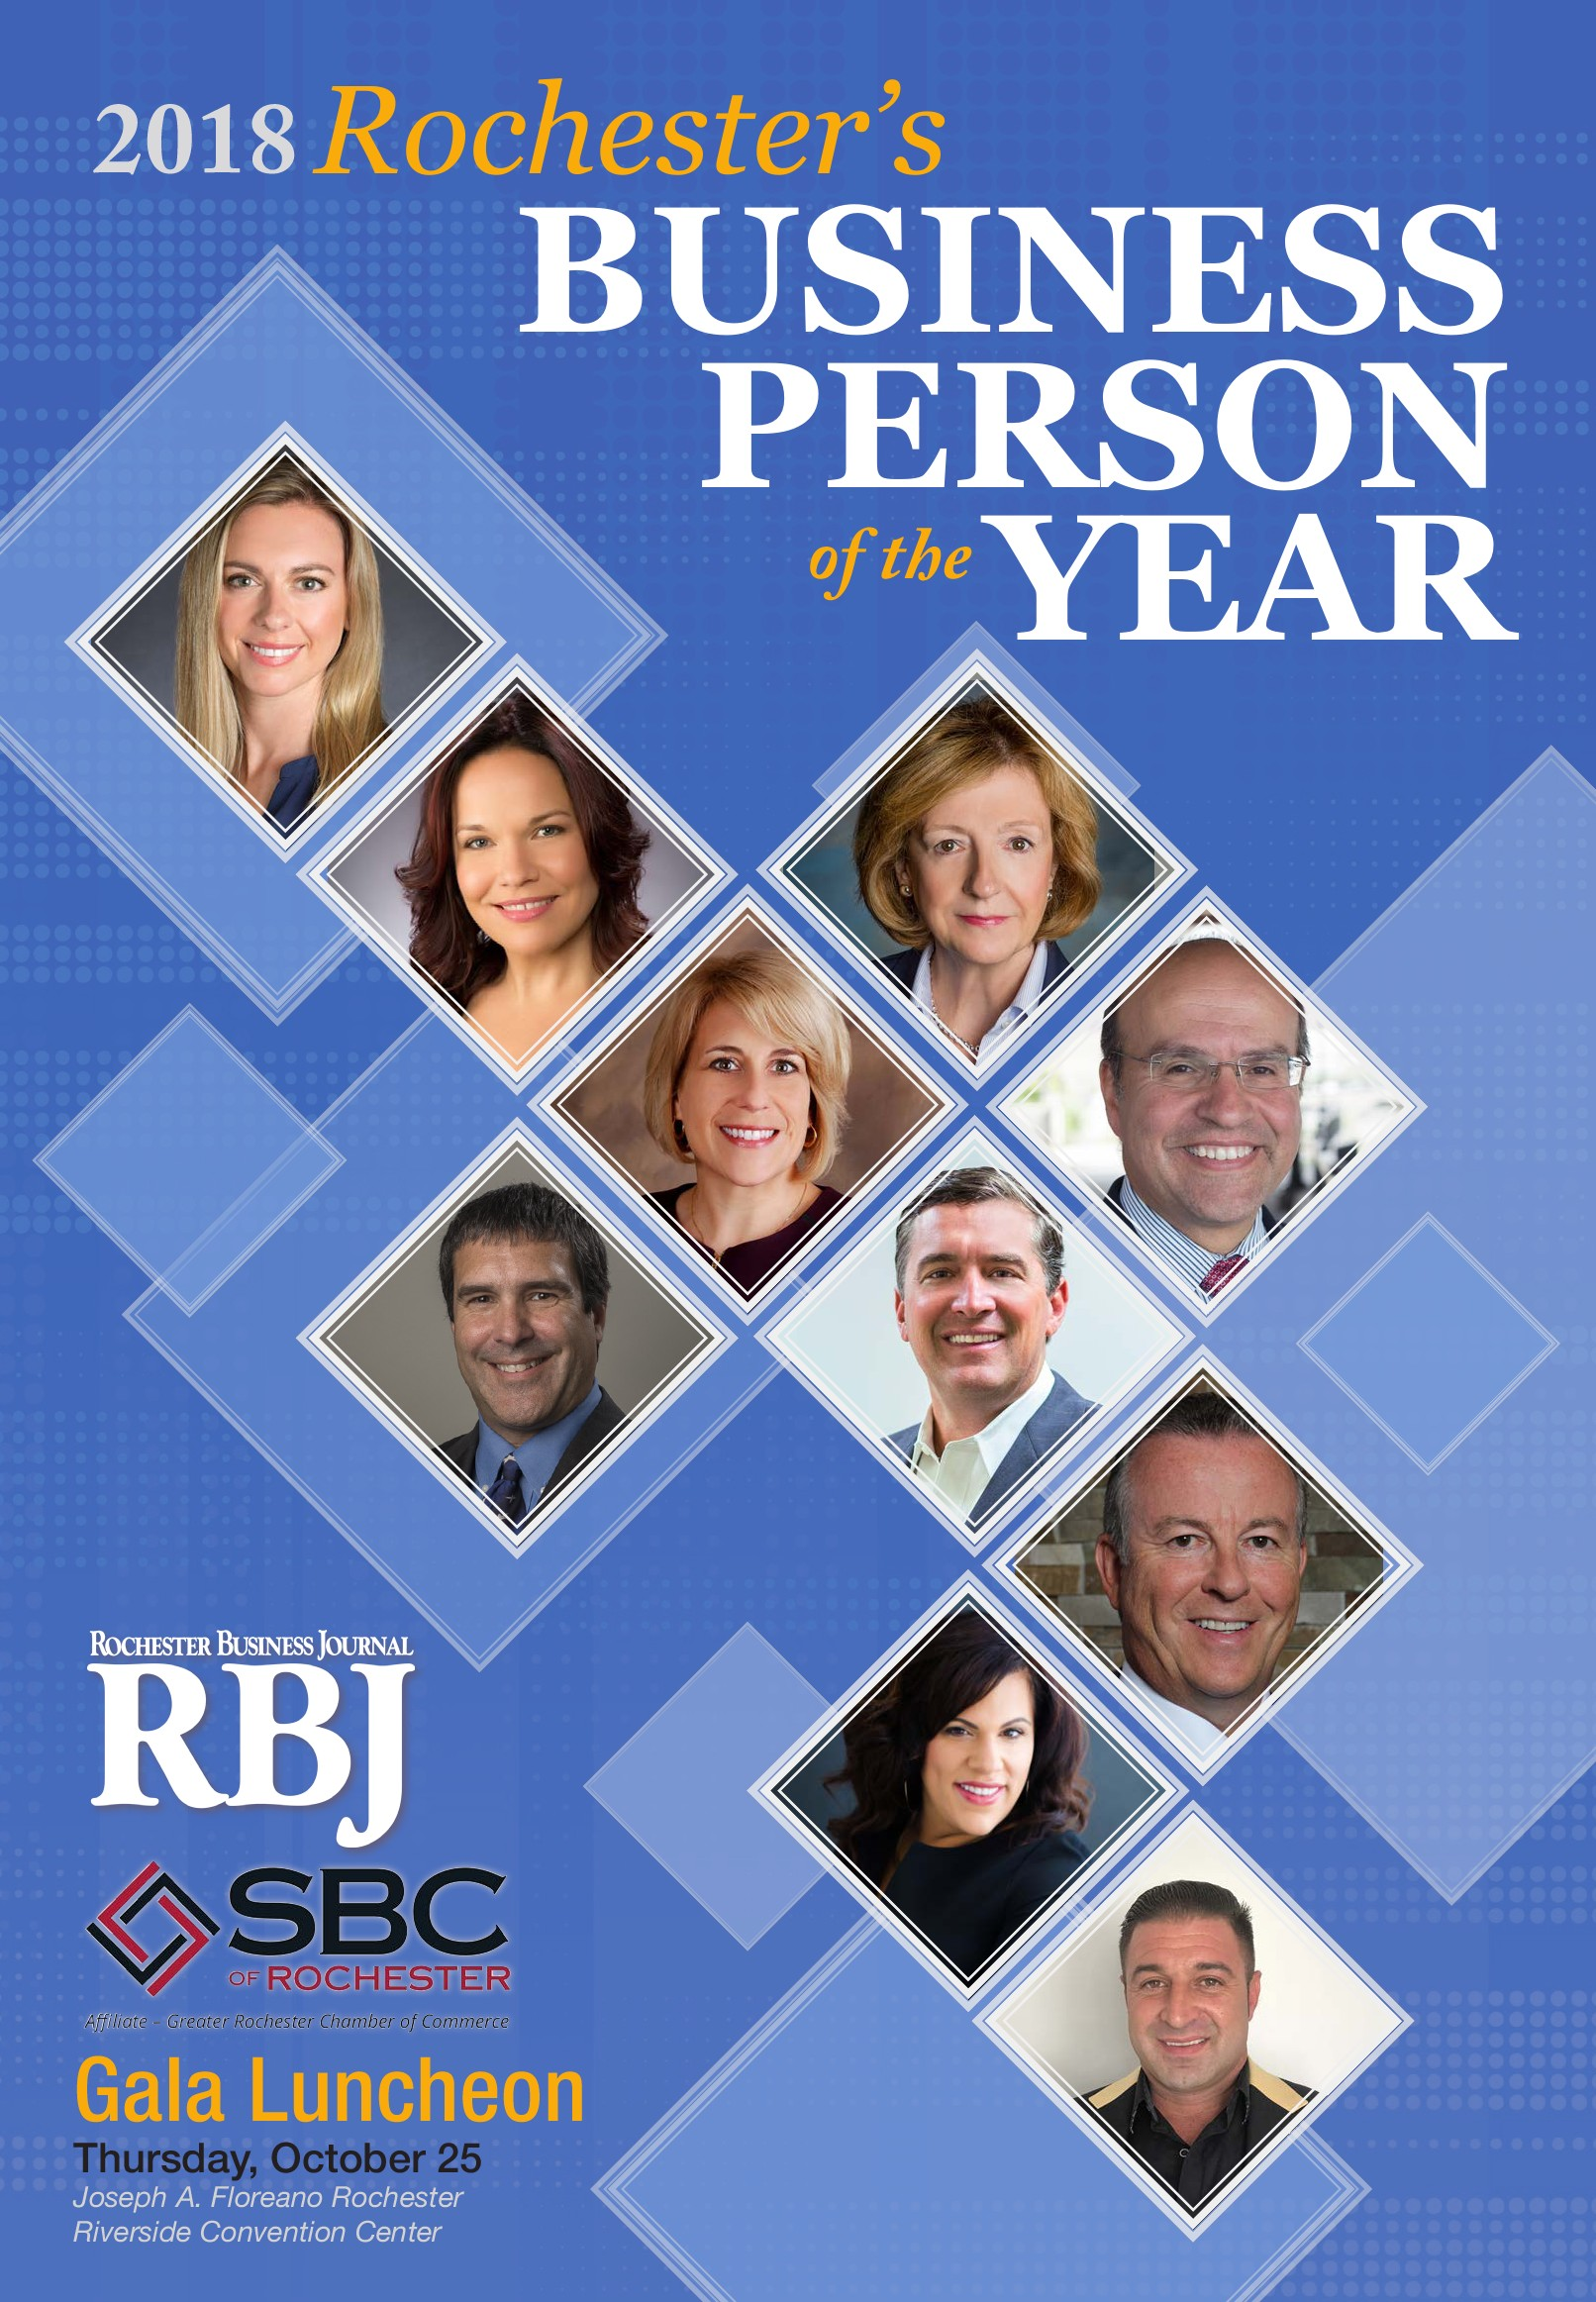 Rochester's Business Person of the Year 2018 | Rochester Business